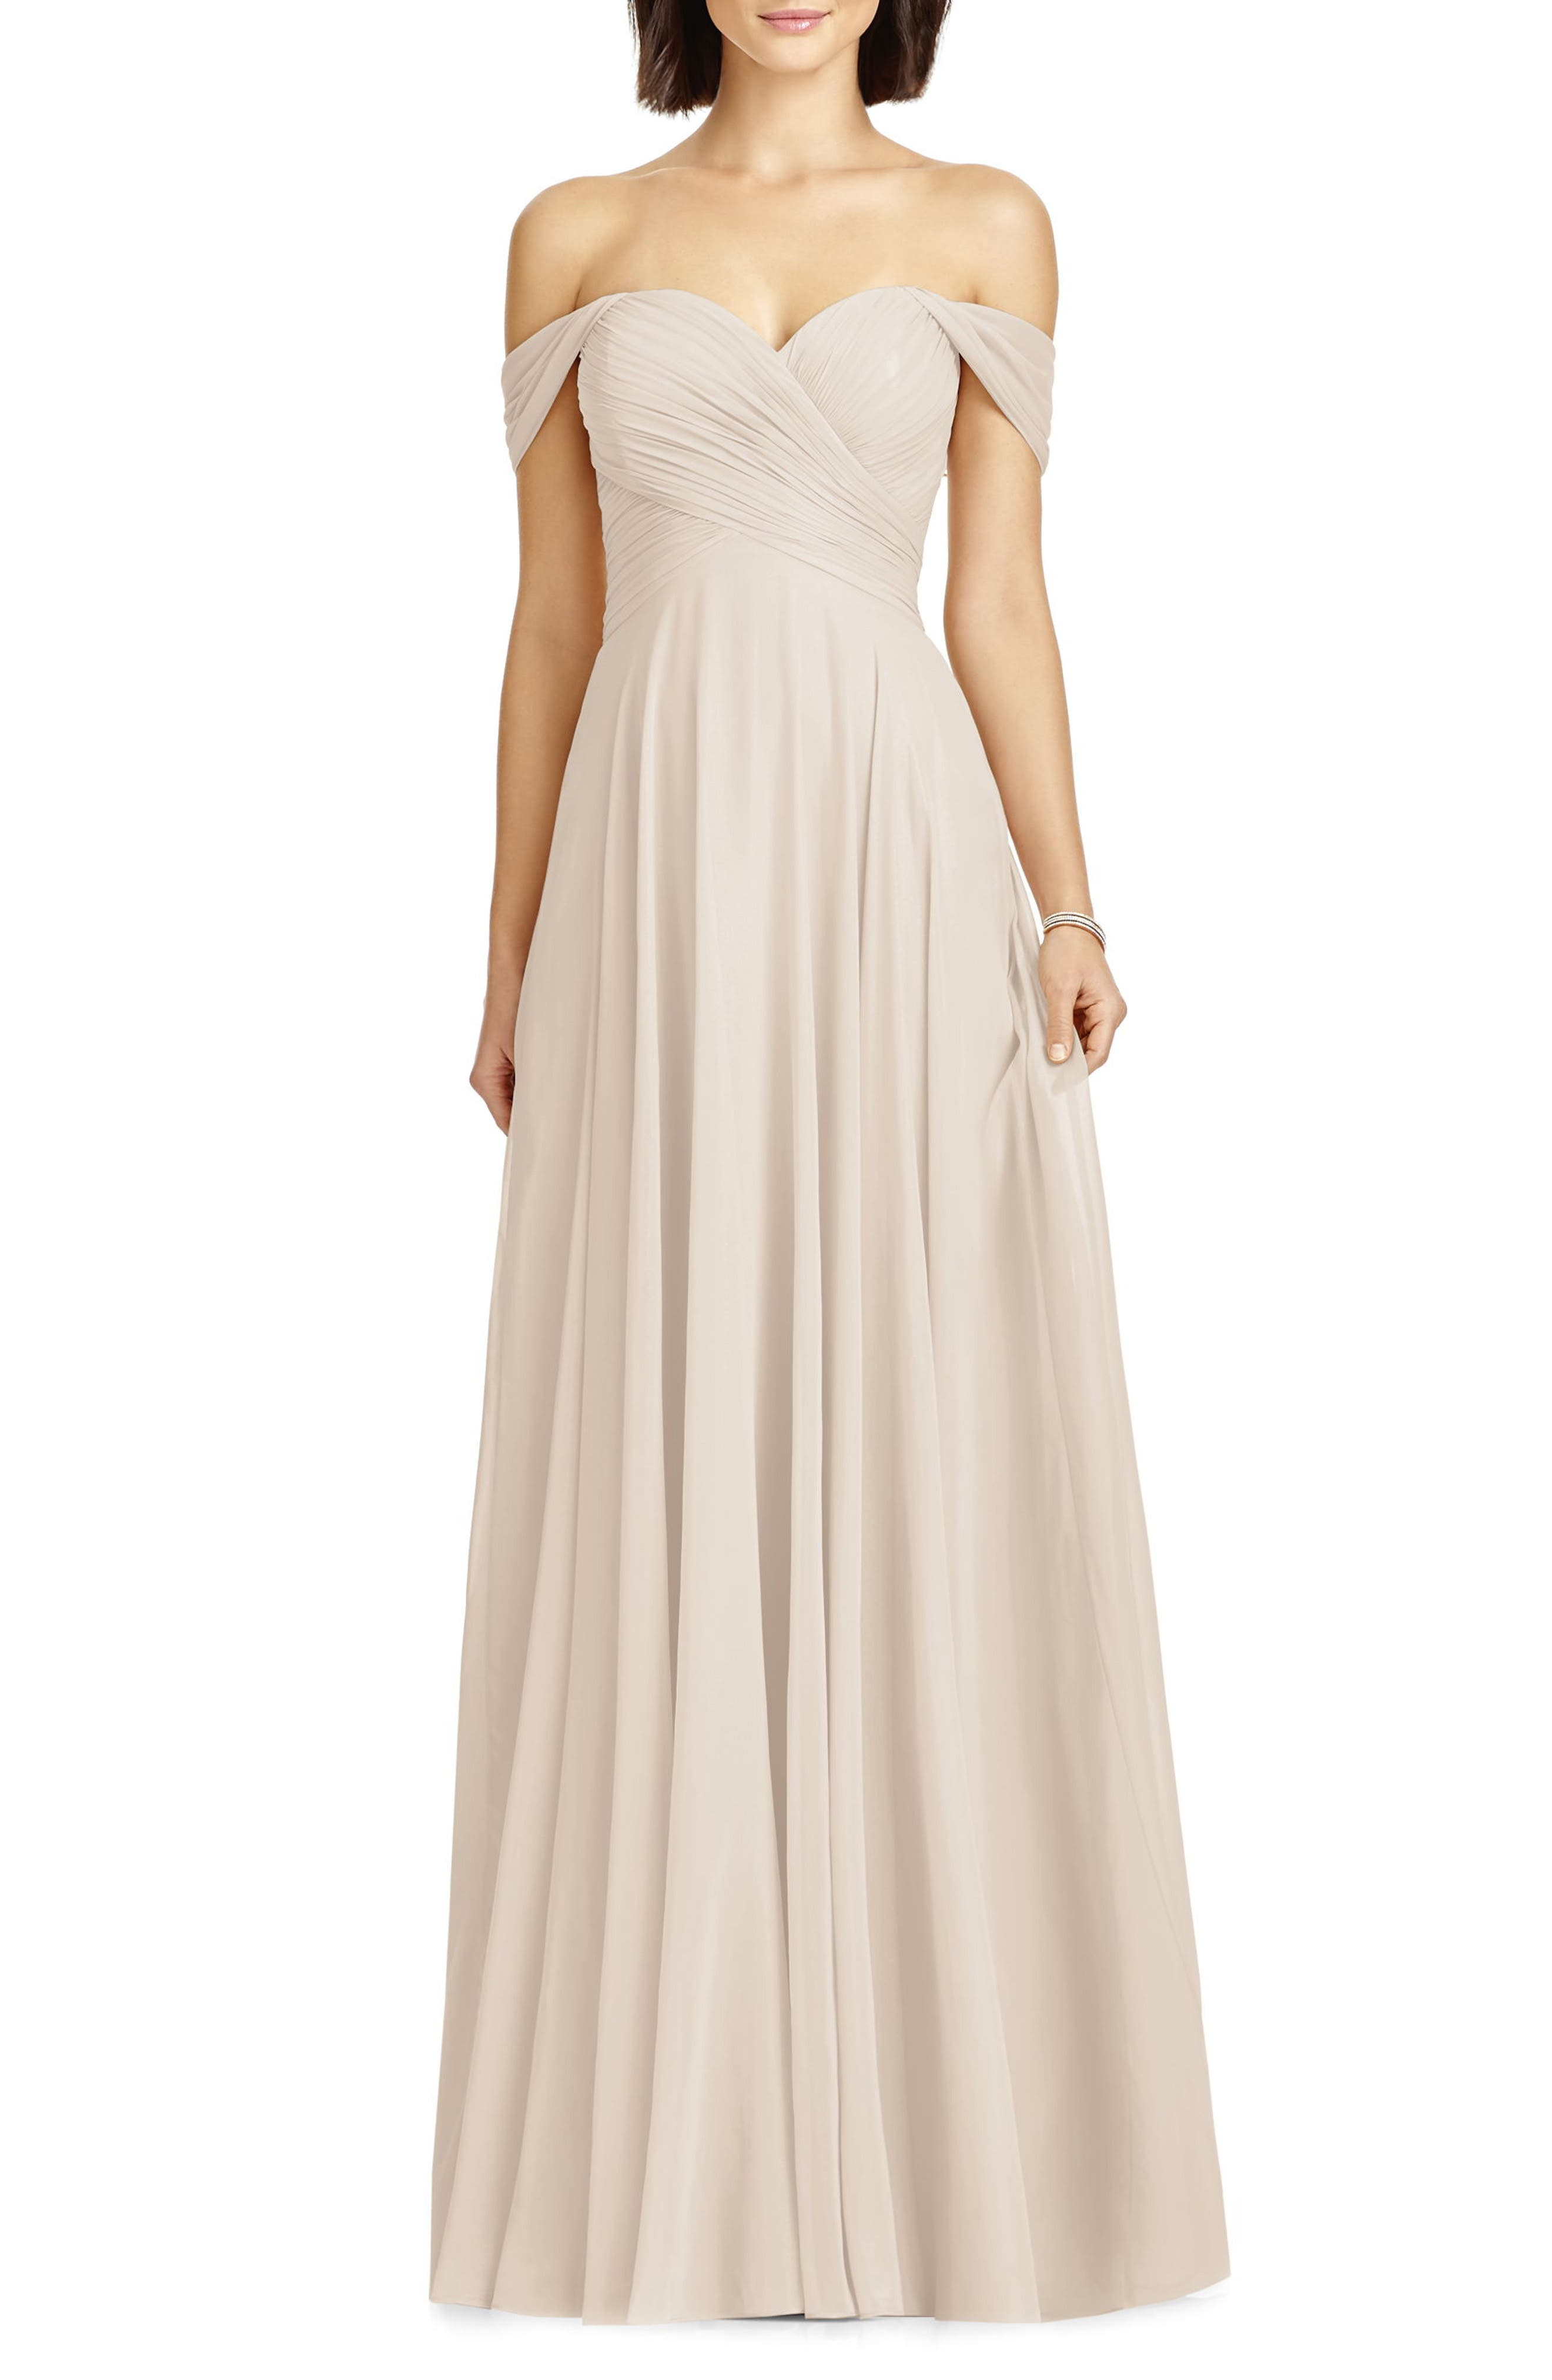 Alternate Image 1 Selected - Dessy Collection Lux Off the Shoulder Chiffon Gown